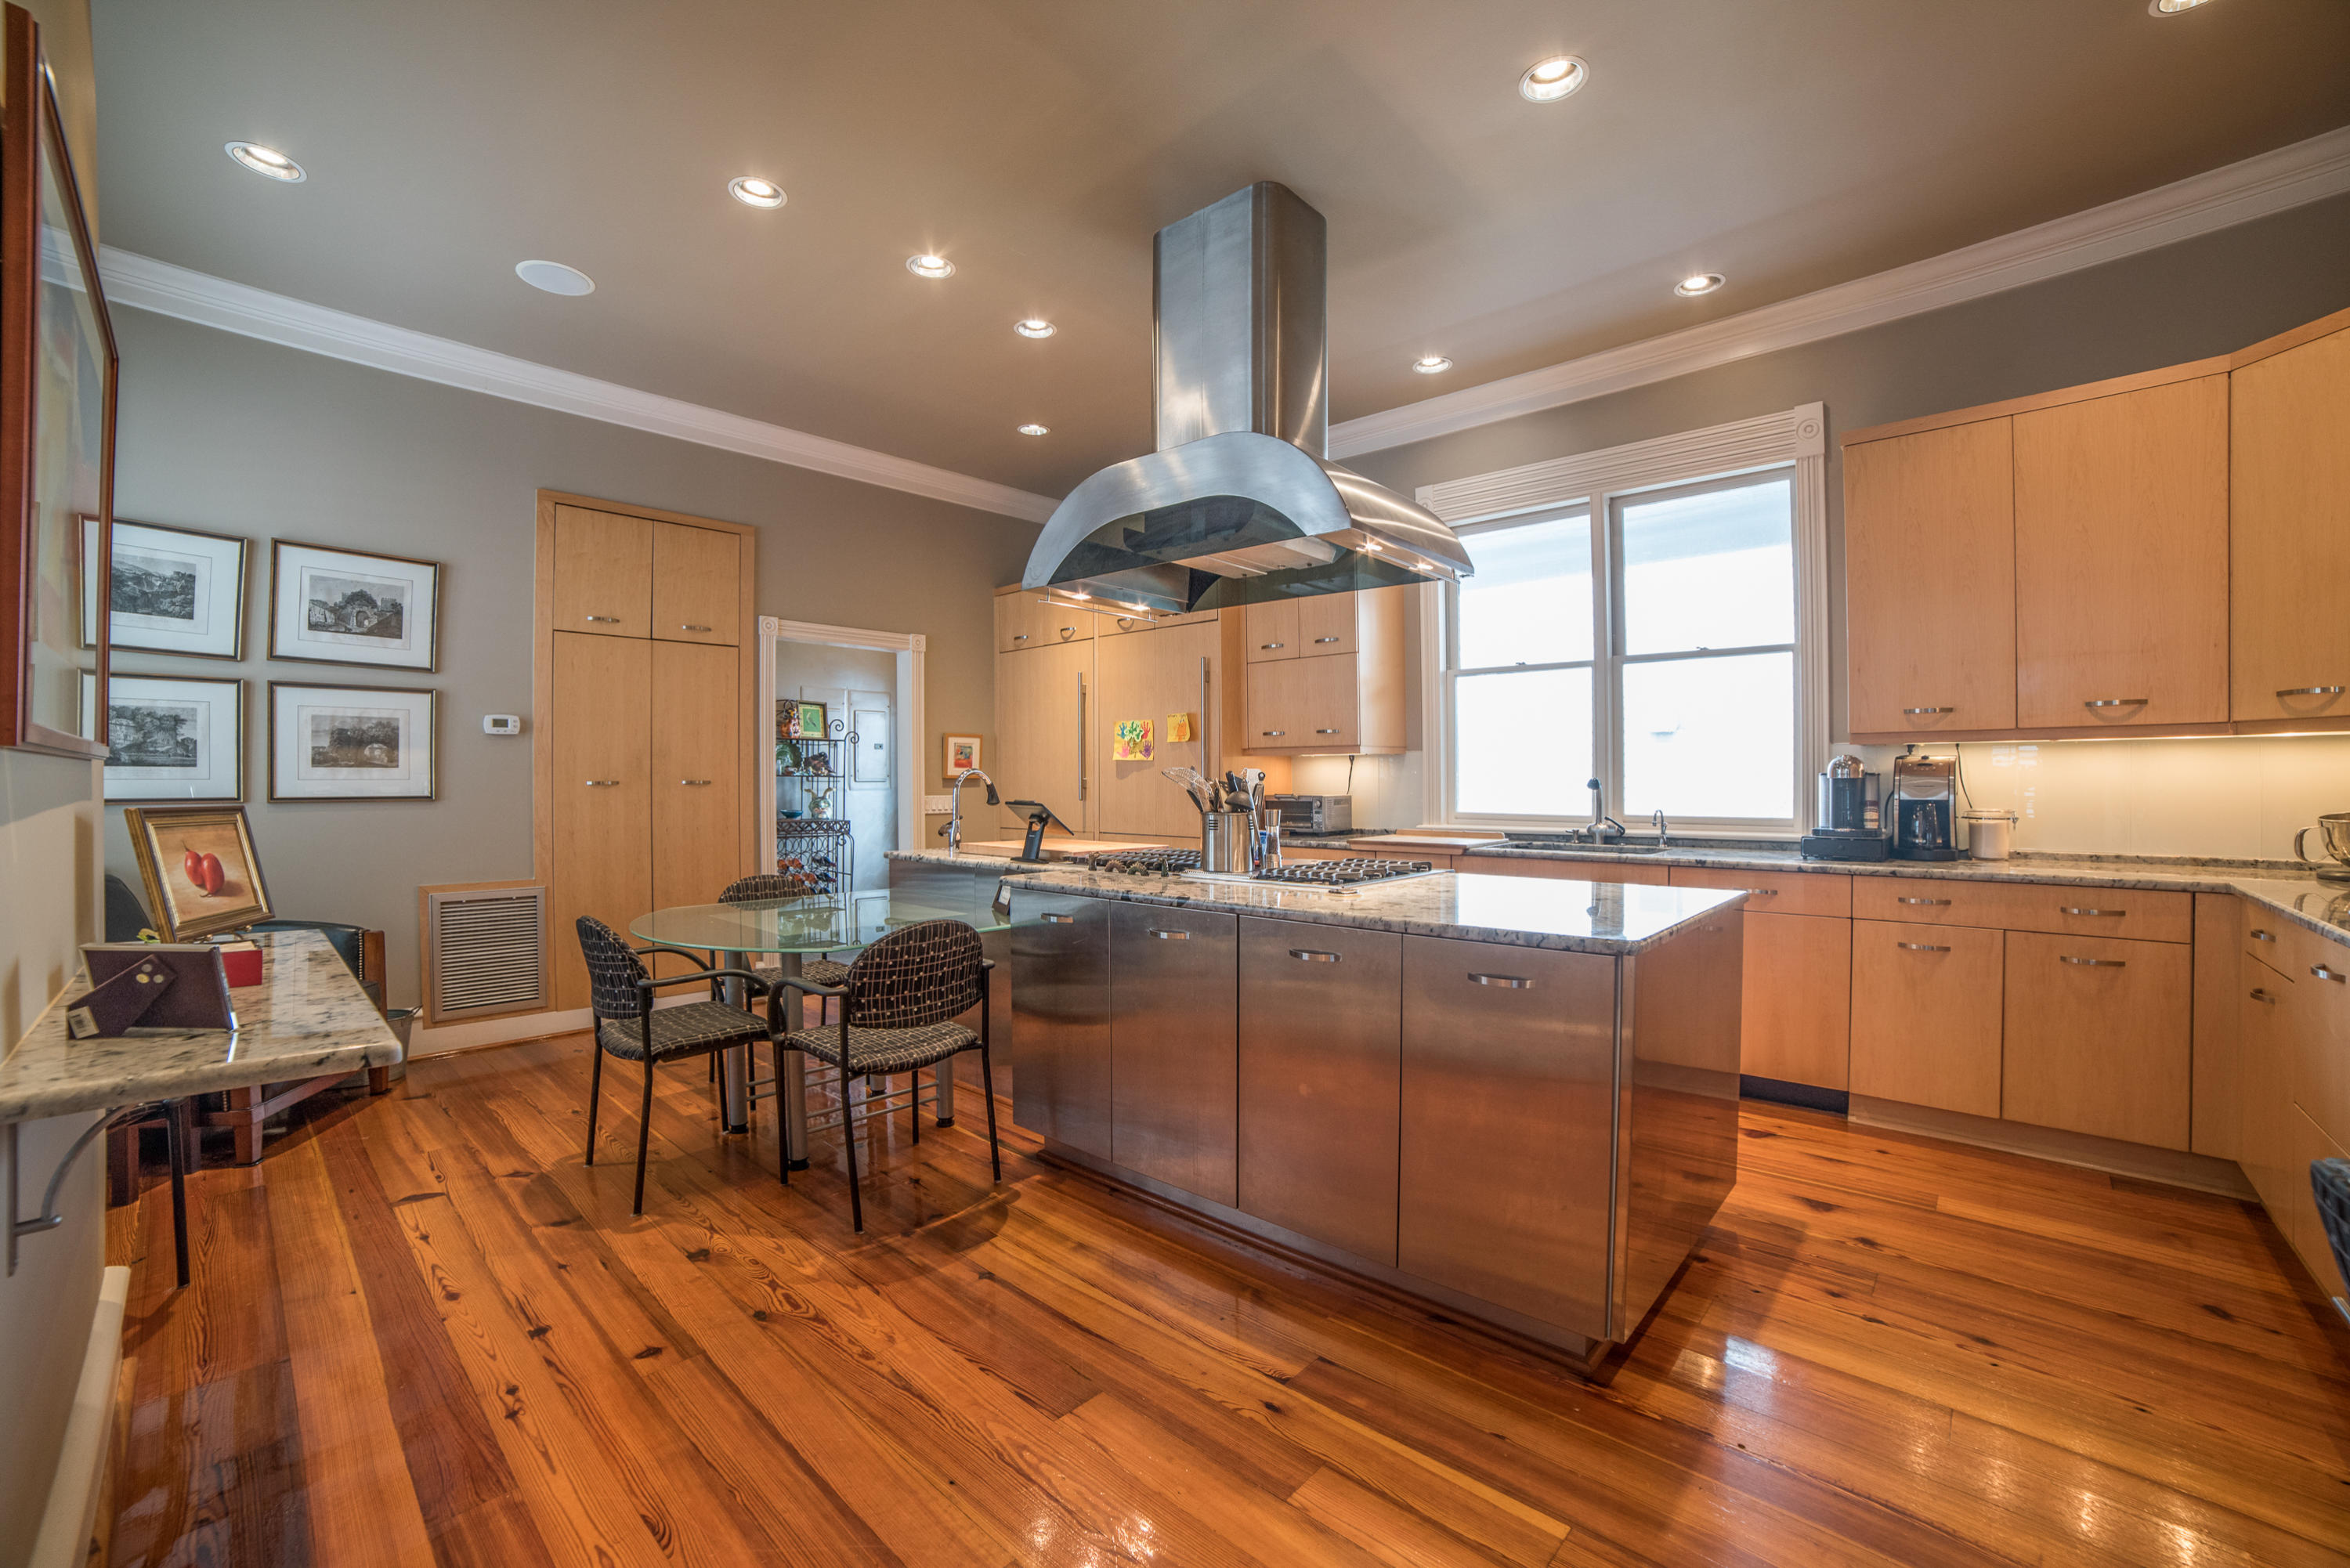 South of Broad Homes For Sale - 21 Lamboll, Charleston, SC - 41